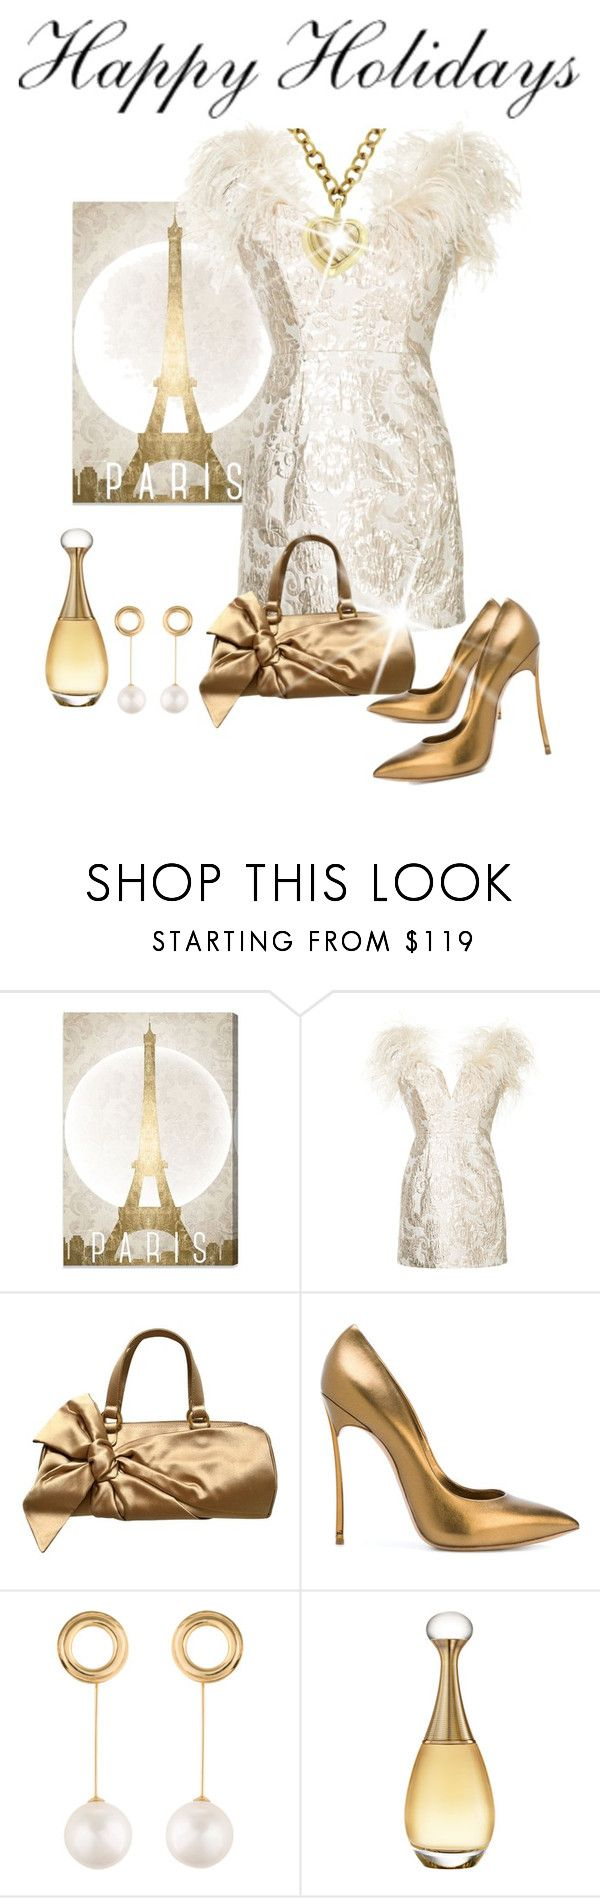 """""""Winter White and Antique Gold"""" by shamrockclover ❤ liked on Polyvore featuring Oliver Gal Artist Co., Alice McCall, Valentino, Casadei, Joanna Laura Constantine, Christian Dior, David Yurman, dress and cocktaildress"""